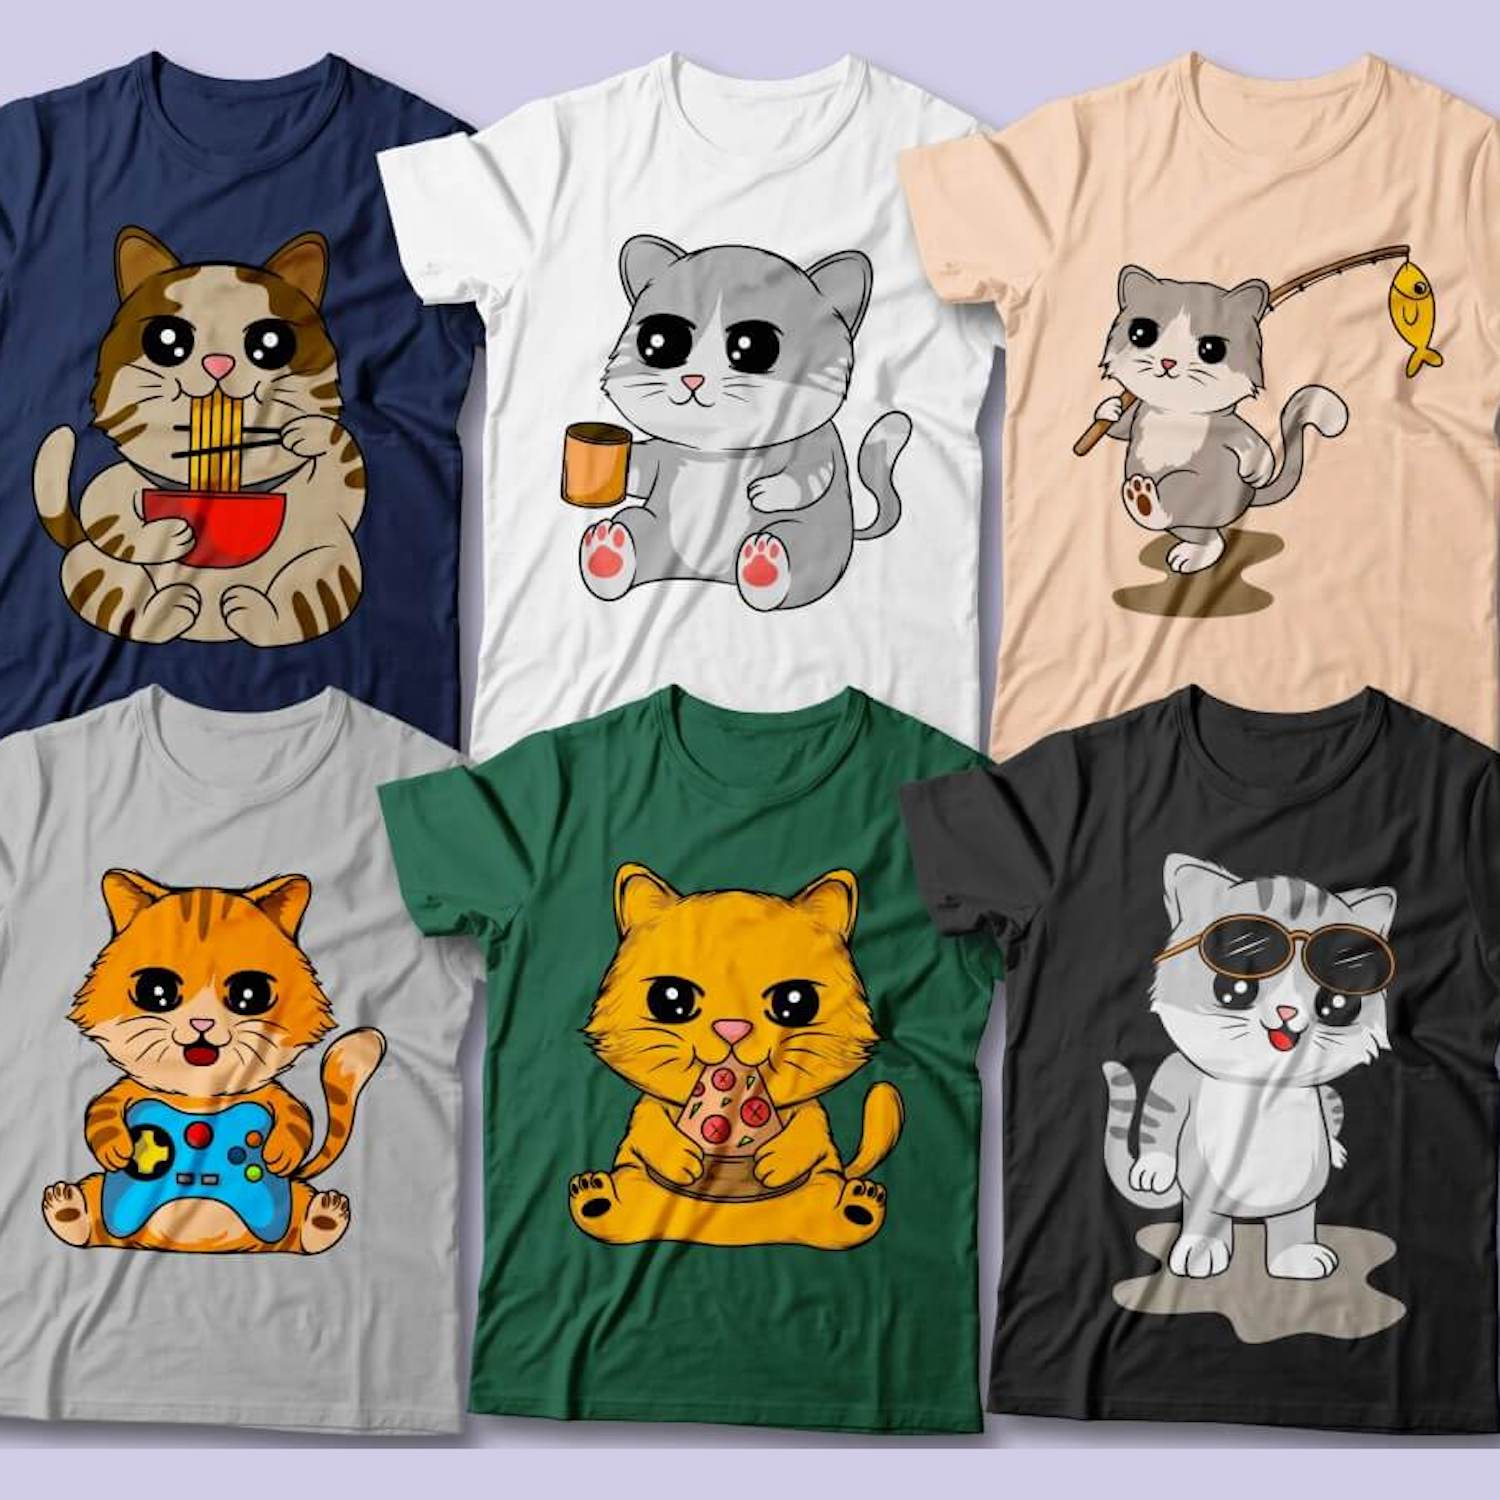 Cute Cats T-Shirt Designs cover image.